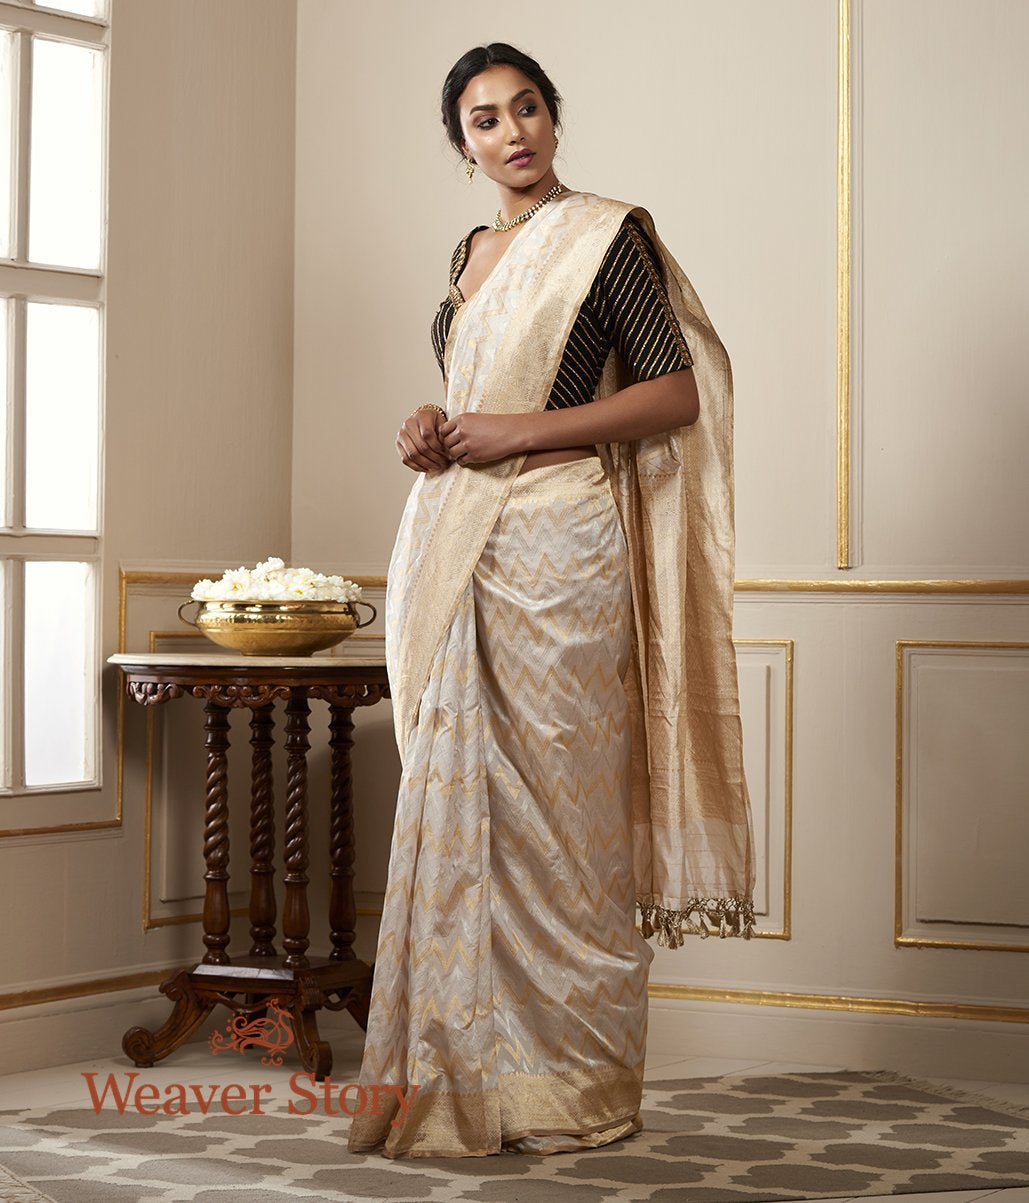 Handwoven Gold and Silver Tissue Saree with Chevrons